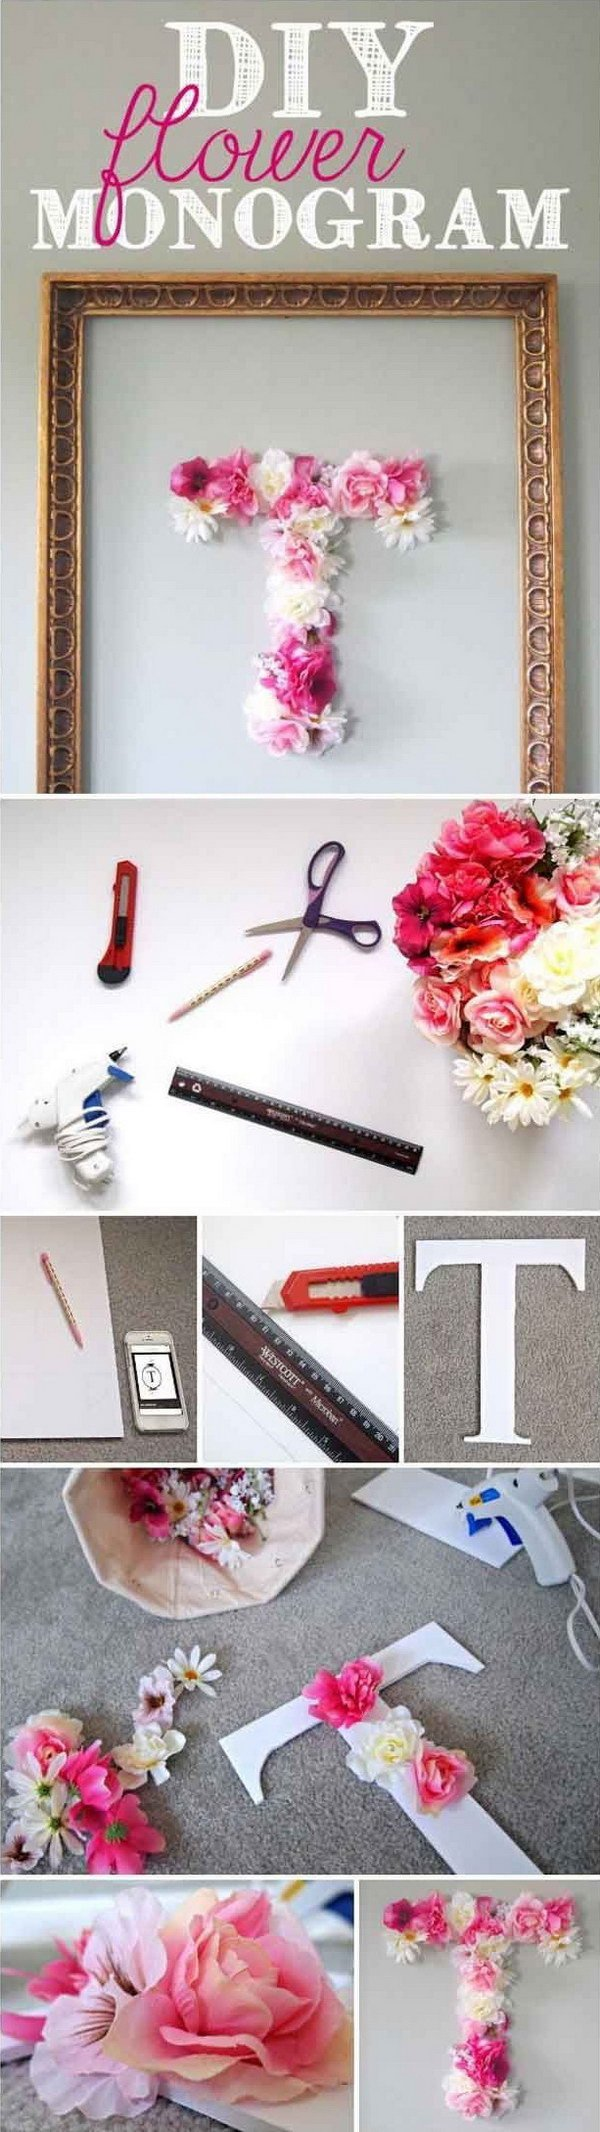 Diy Bedroom Decor for Teens Luxury 25 Diy Ideas & Tutorials for Teenage Girl S Room Decoration 2017